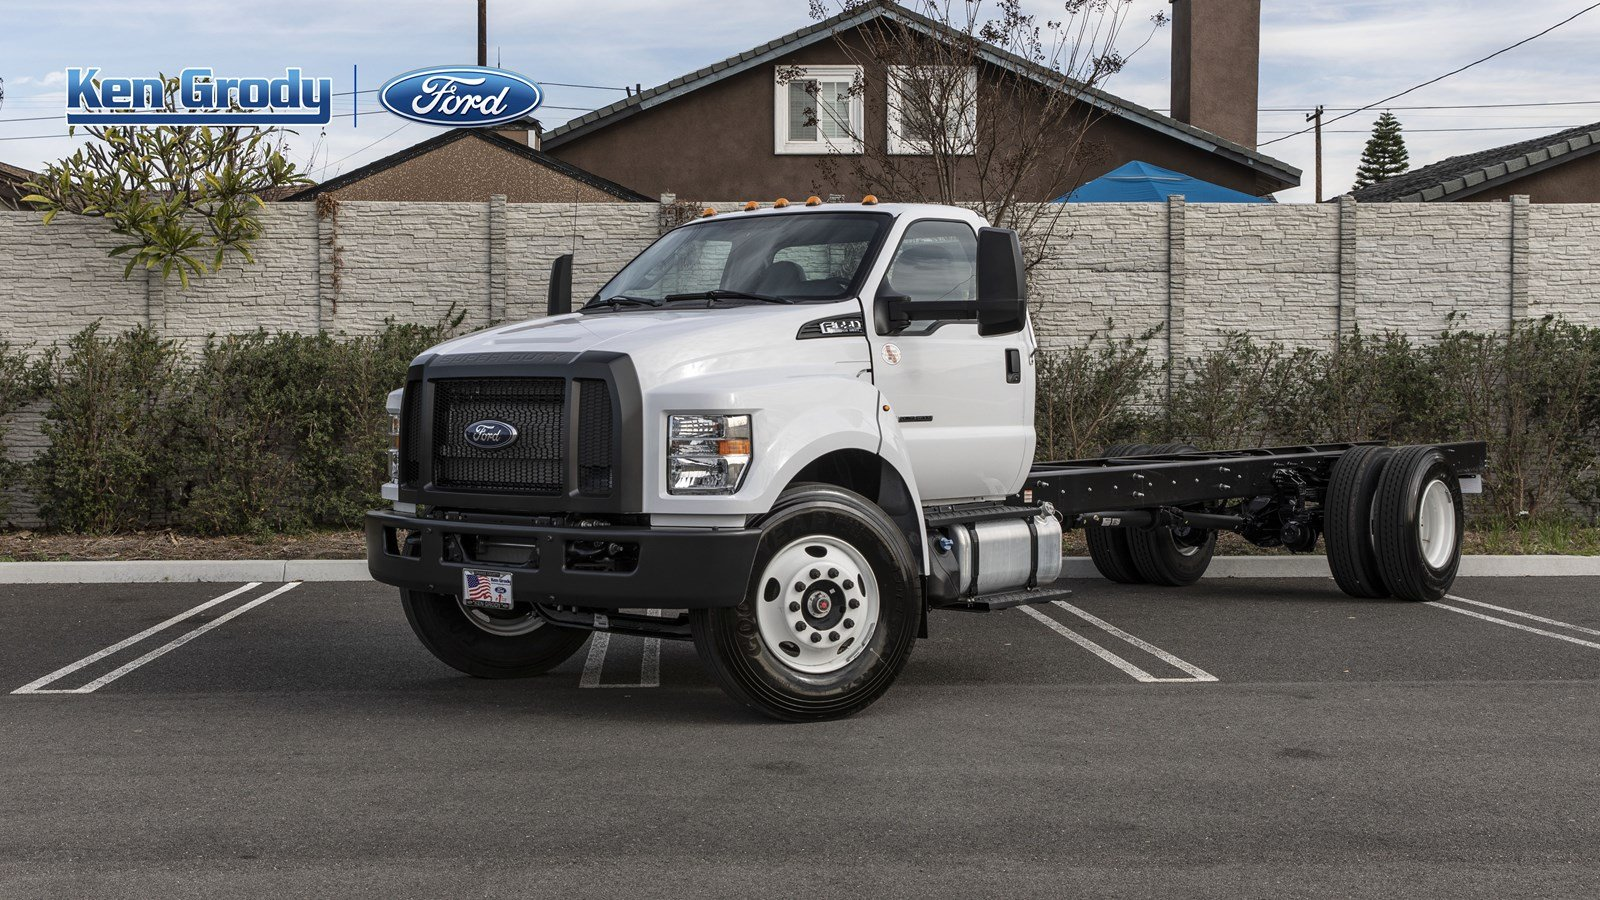 2021 Ford F-650 Regular Cab DRW 4x2, Cab Chassis #210009 - photo 1